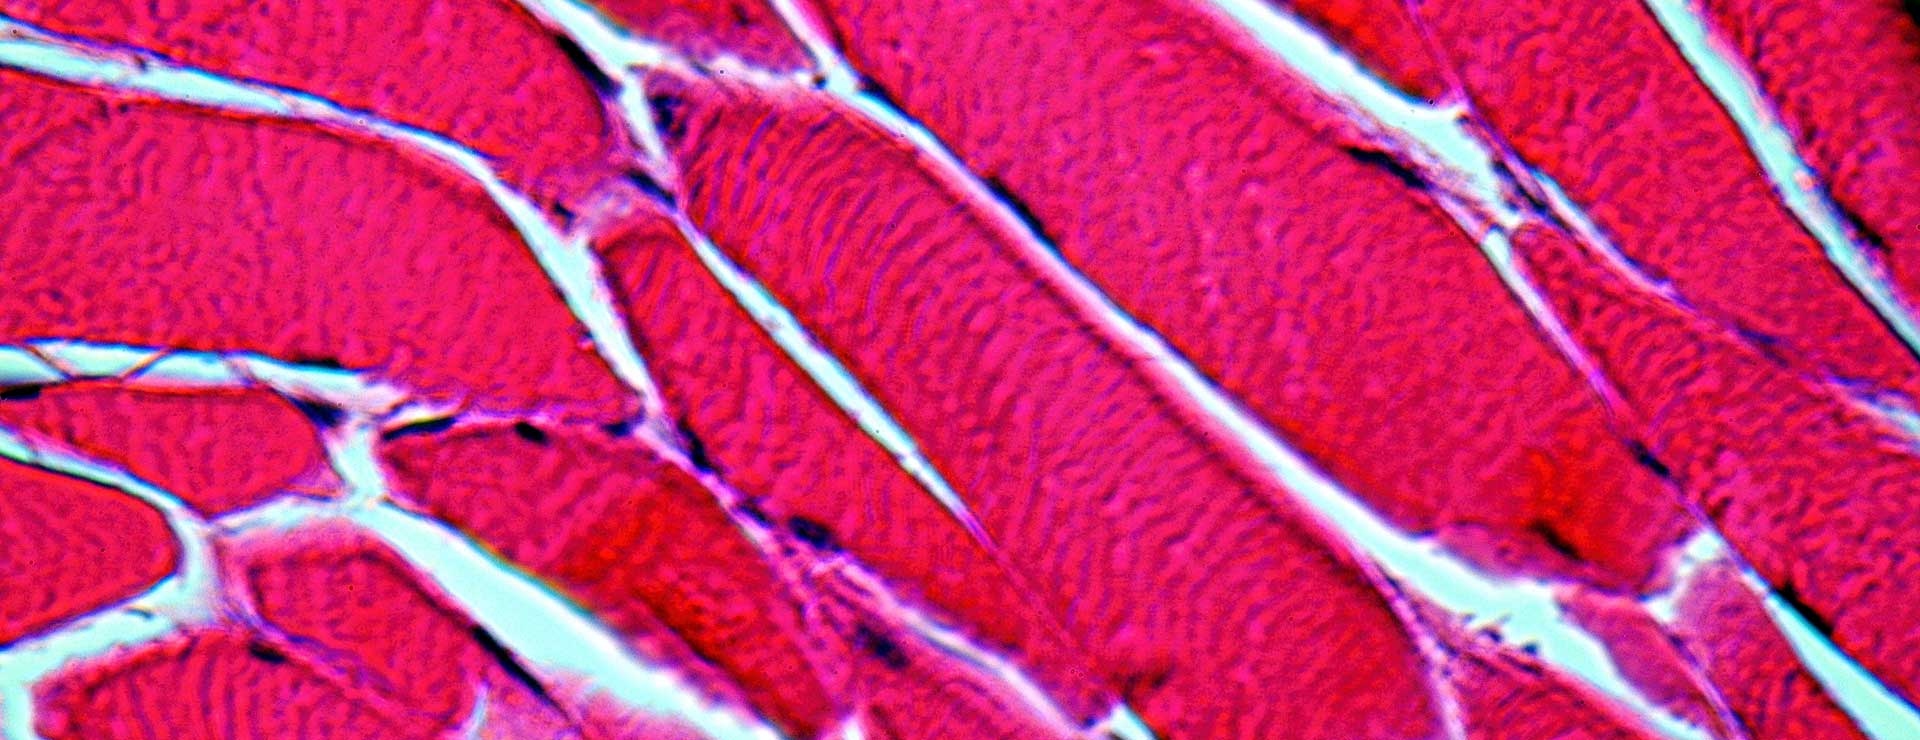 Muscle cells at 1000 times magnification